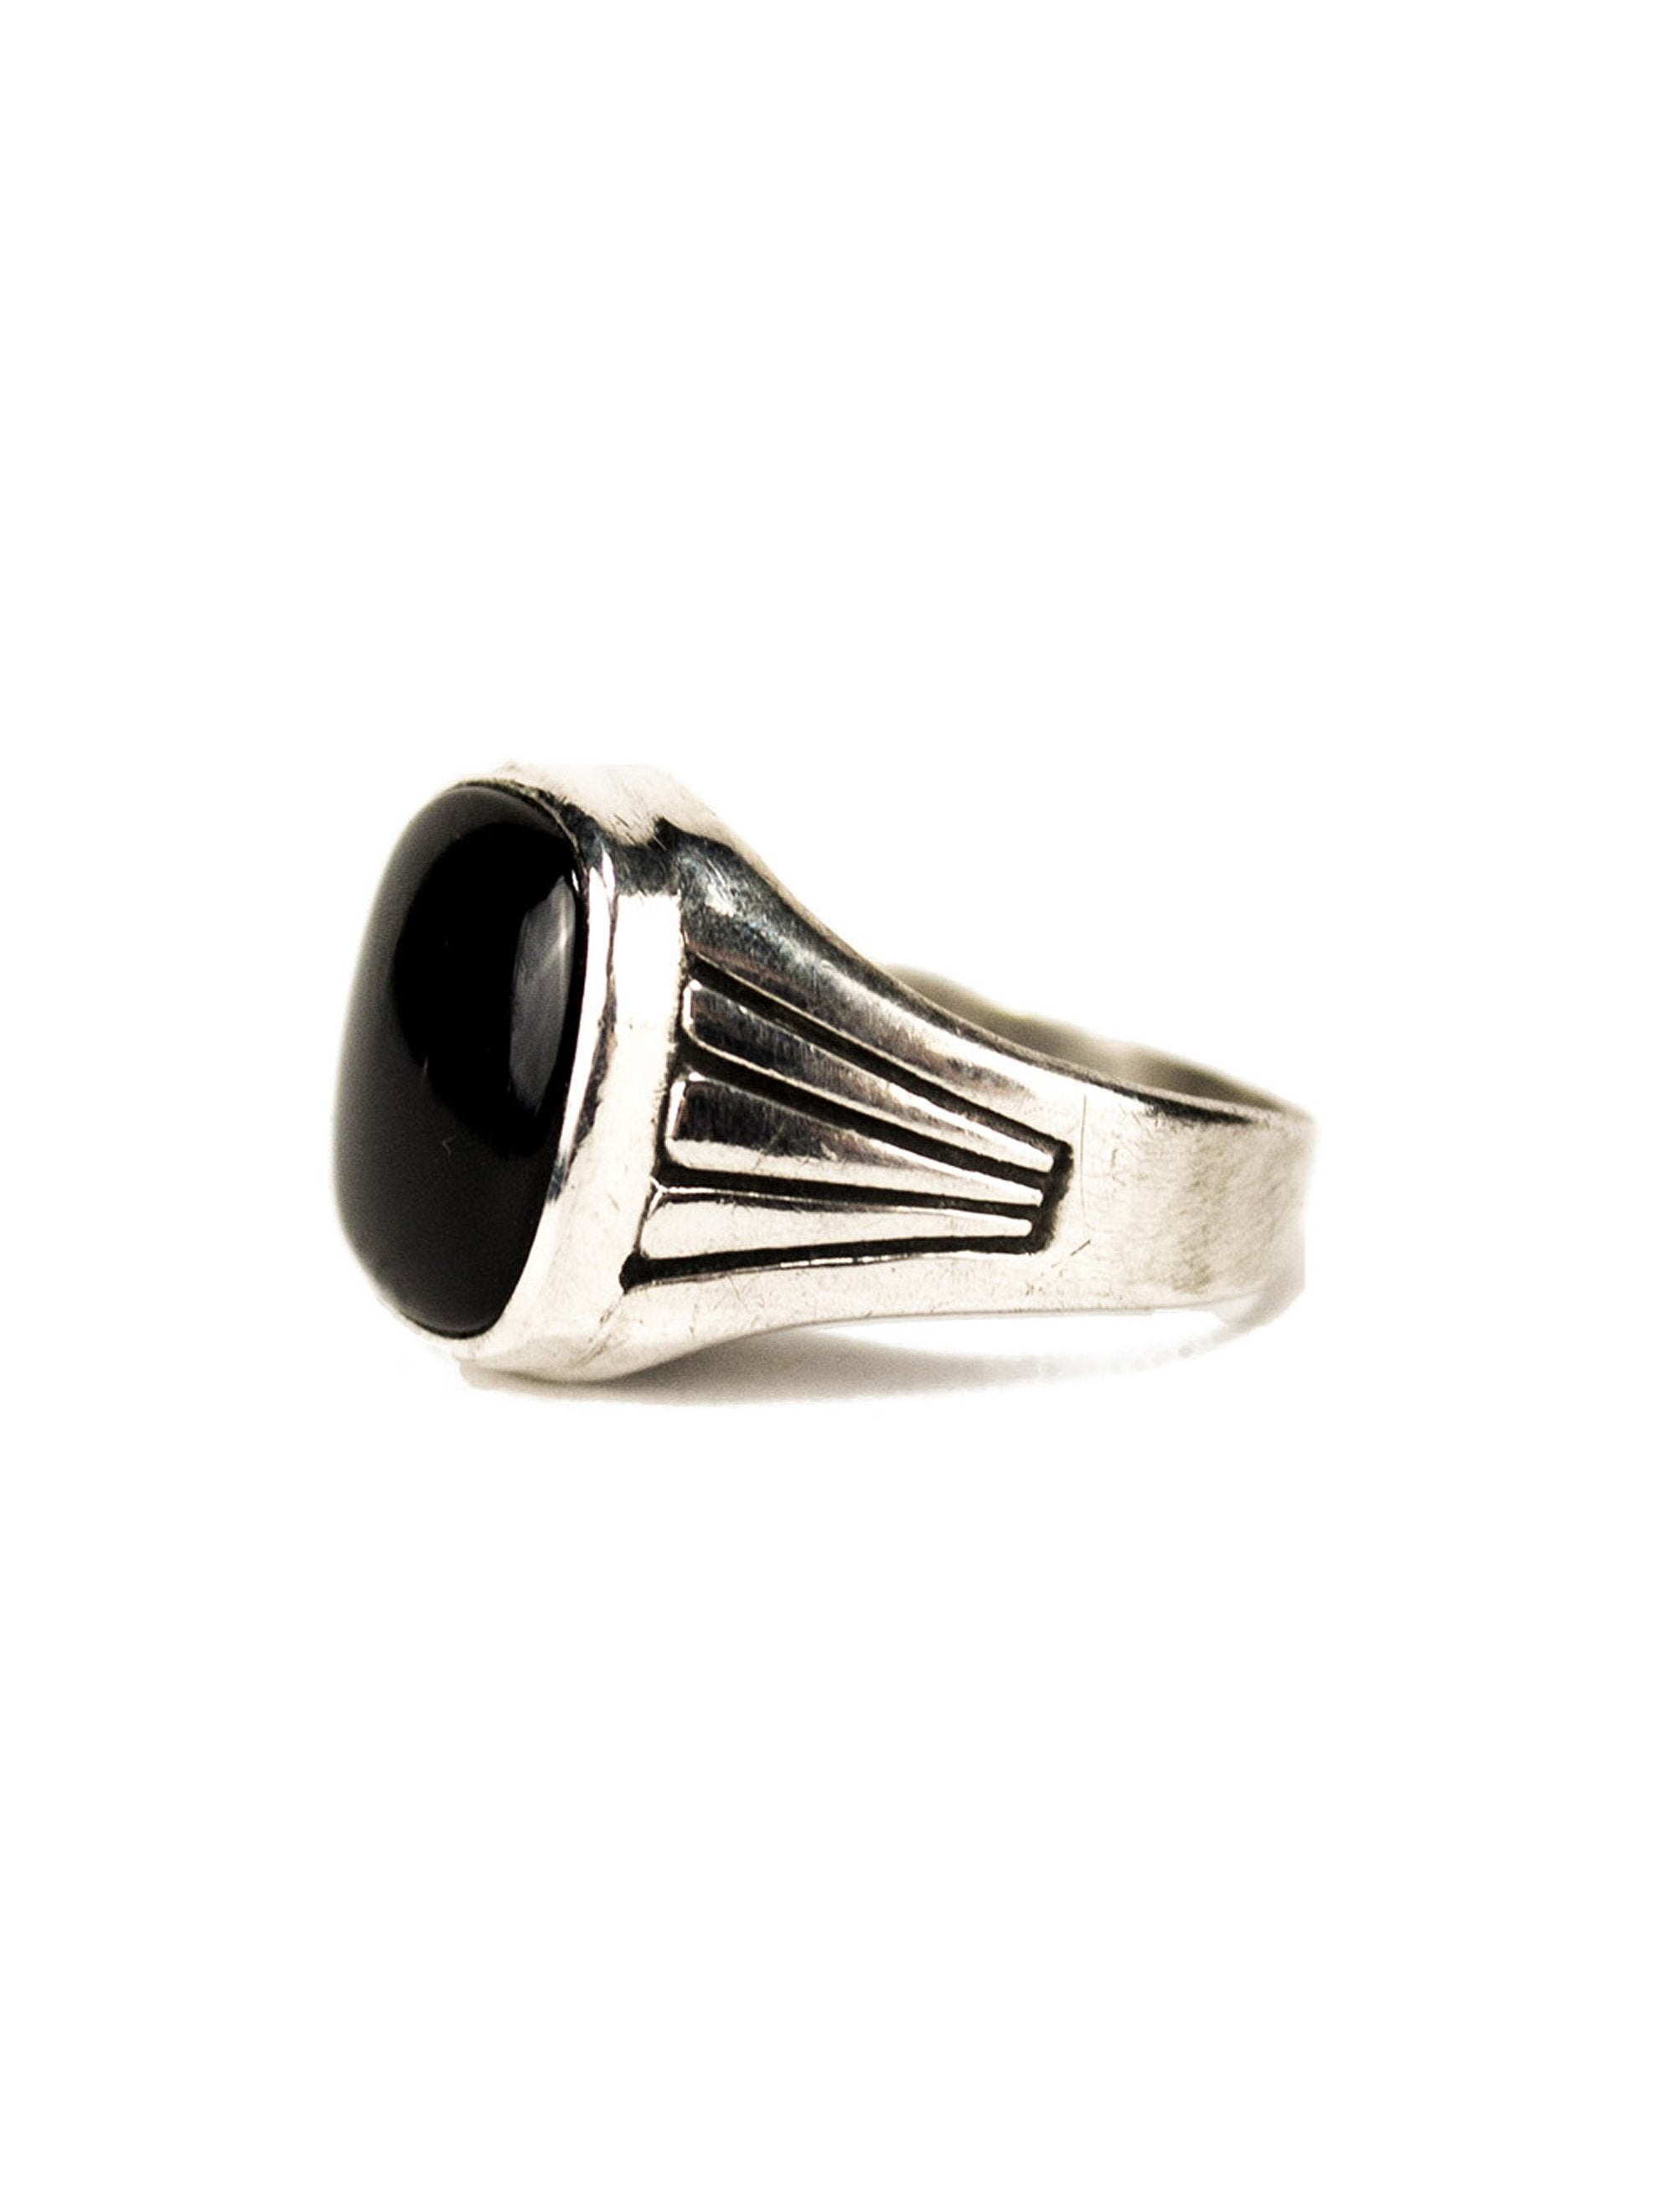 9.5 1930's Sterling Silver and Onyx Men's Ring 2